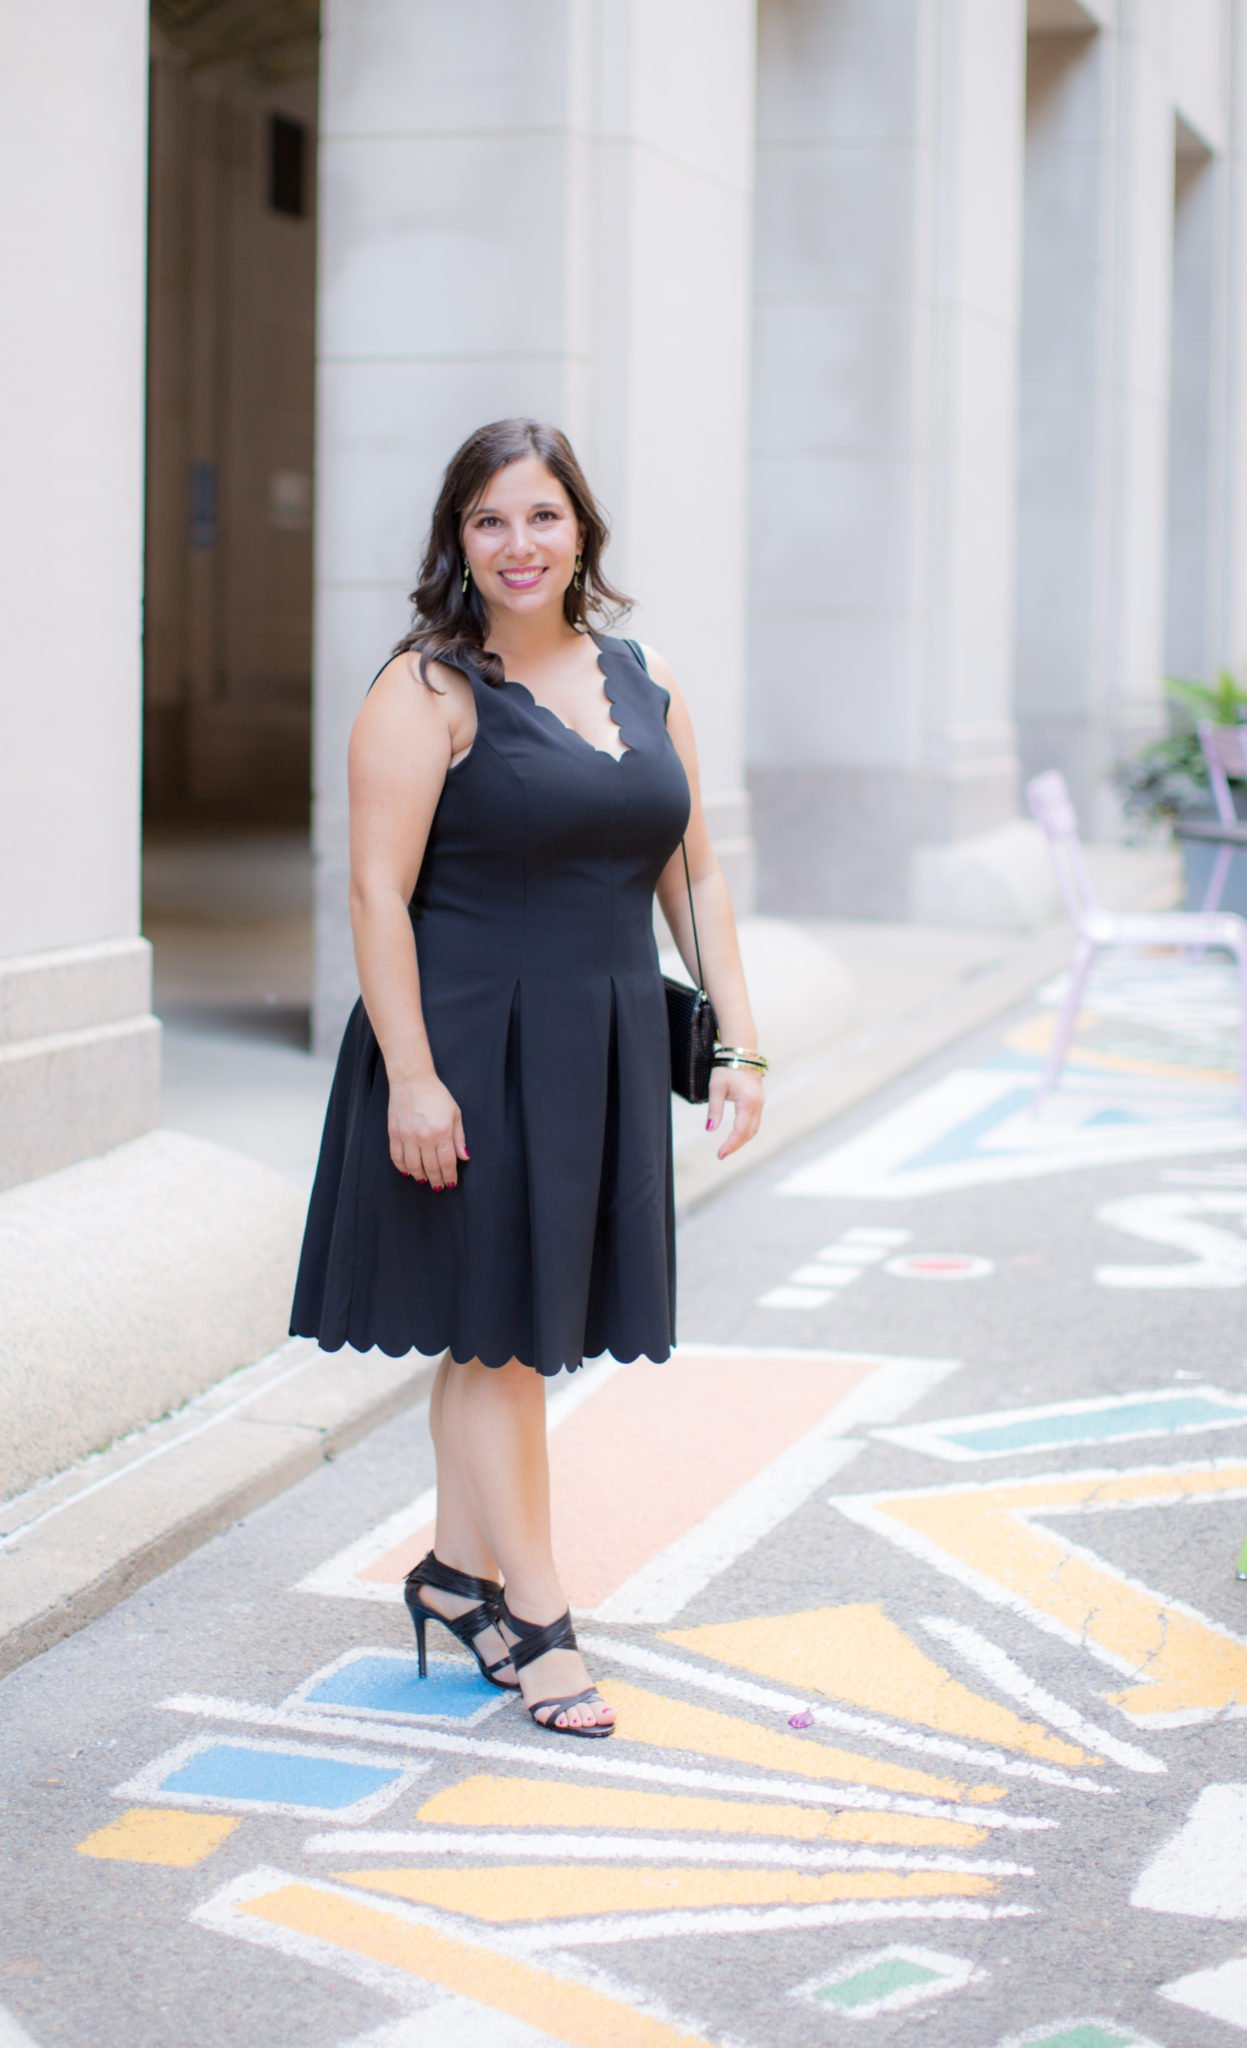 banana republic scallop cocktail dress featured by top US fashion blog, Wellesley & King